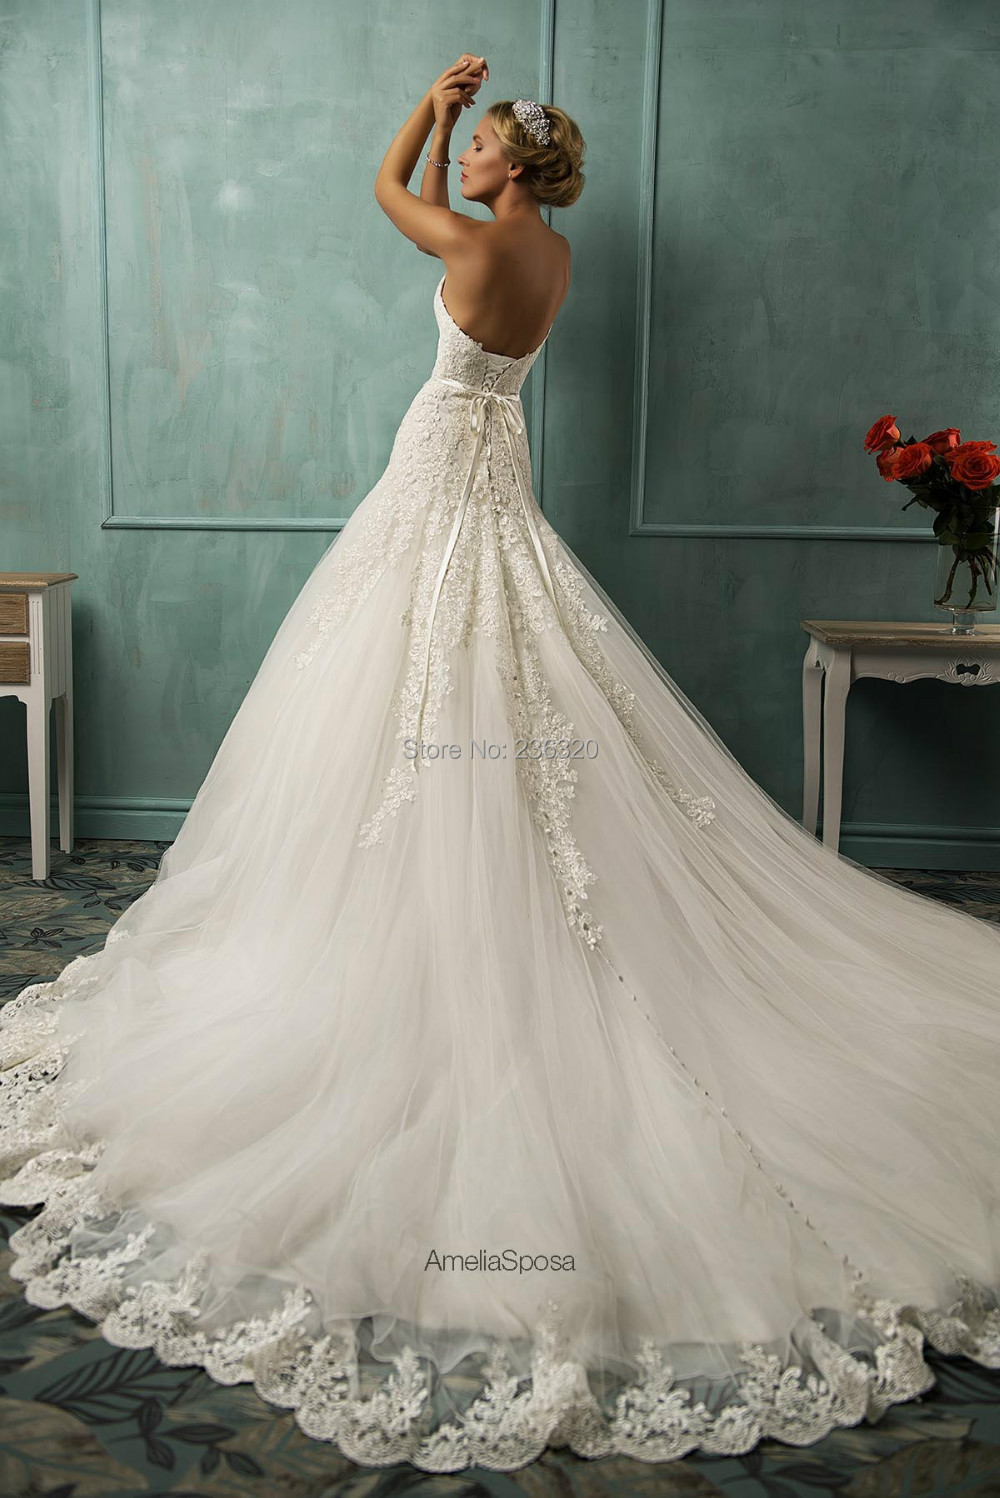 Wedding Gown Lace Up Back : Wedding dress sweetheart sashes princess lace appliuques up back